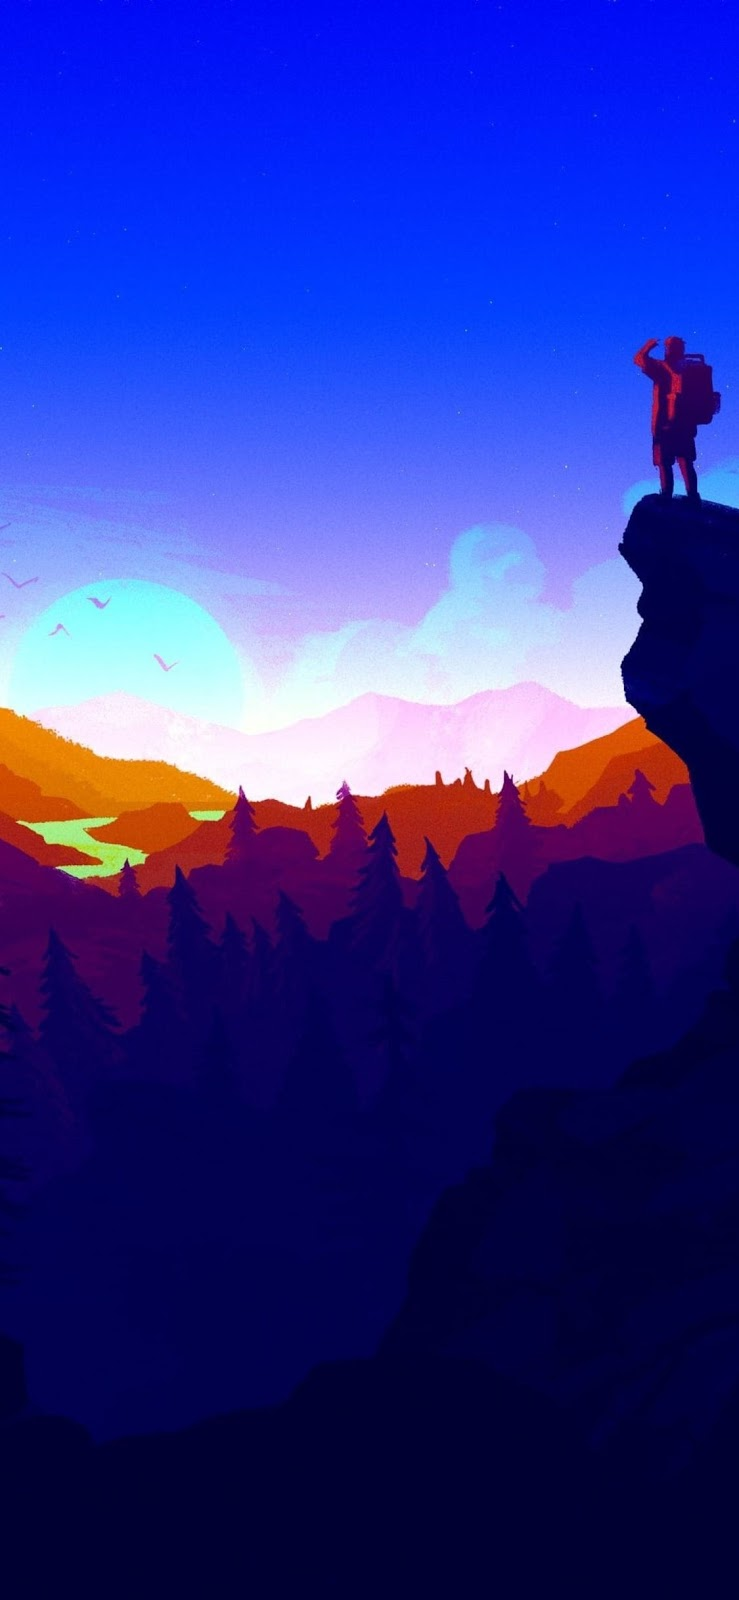 iPhone X 4k firewatch wallpaper download